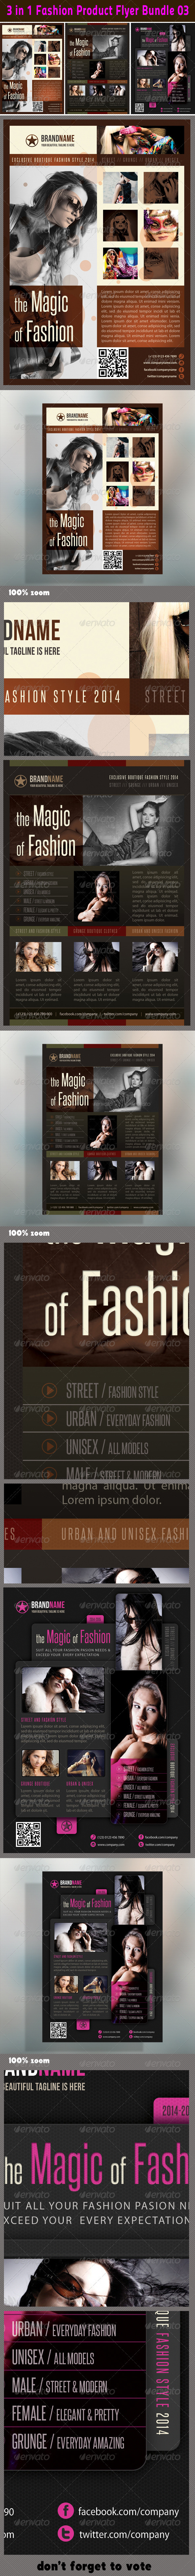 GraphicRiver 3 in 1 Fashion Product Flyer Bundle 03 6183149